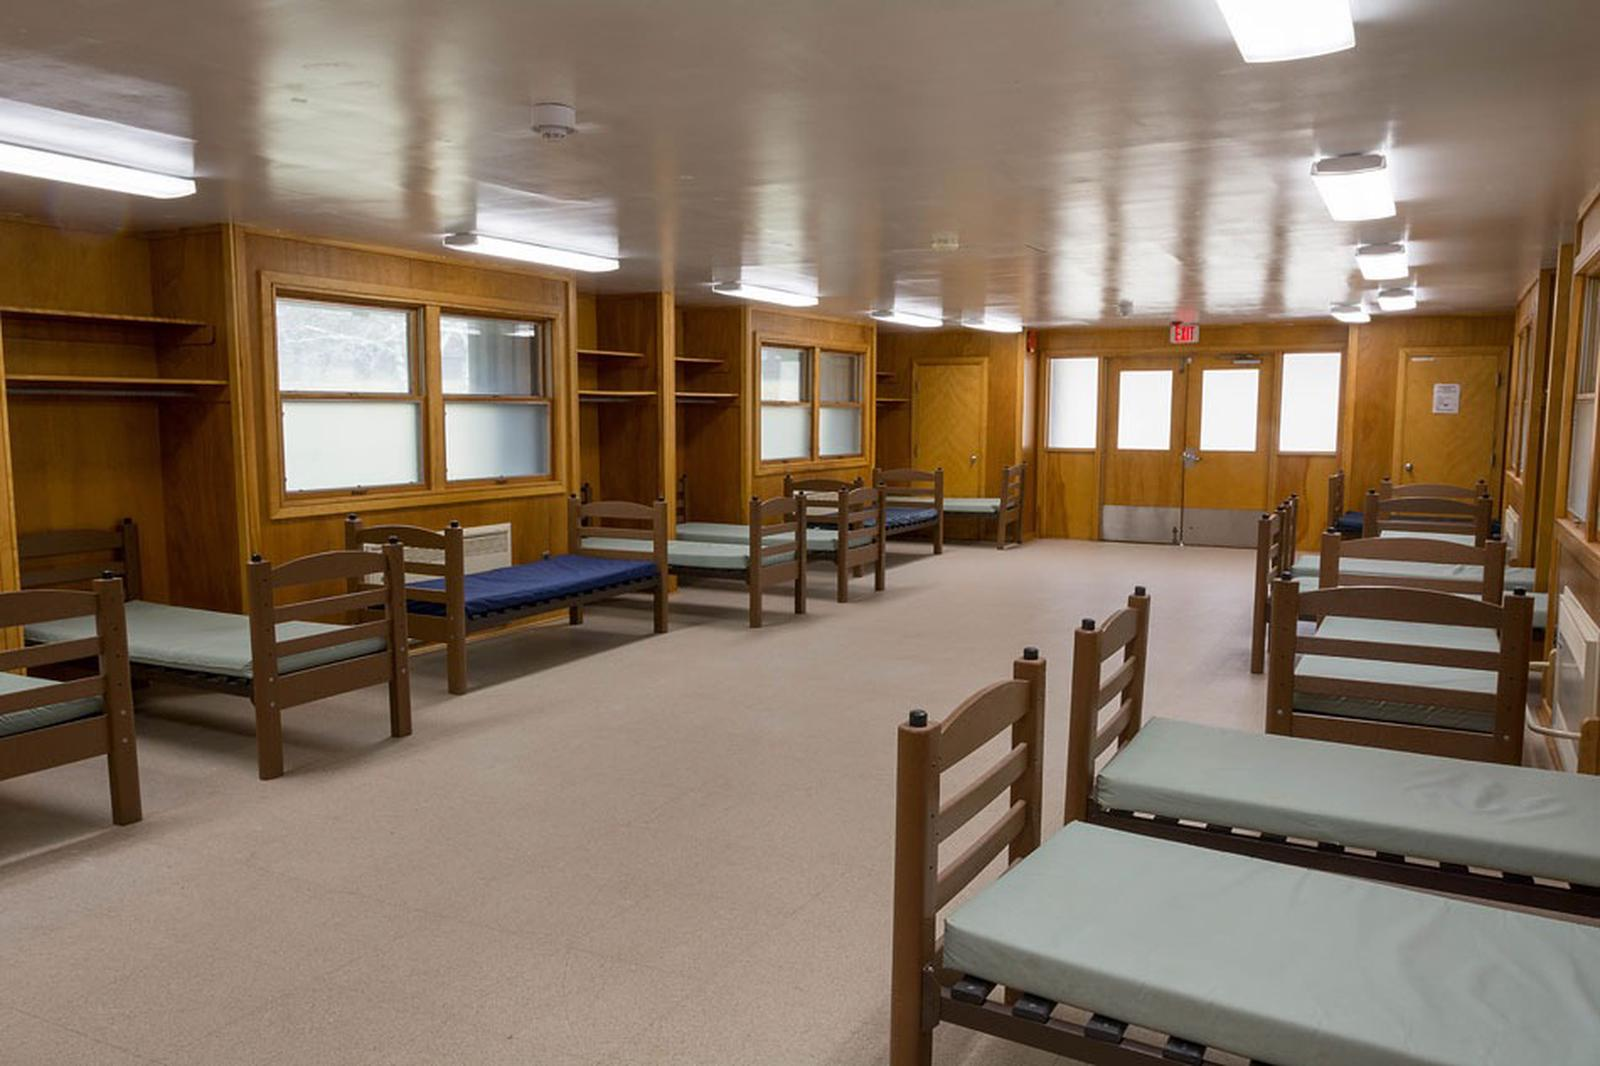 Interior view of 1 dormitory wing. Vinyl floor with wooden walls, 2 double windows, 1 double door with window panels.  10 single beds with vinyl covered mattresses.Each dormitory is heated and  accommodates 30 overnight guests.  There are 15 single beds on each of the 2 connected wings.  Each wing has a separate room with 1 single bed.  There are a set of bathrooms for each wing and a supply closet with cleaning equipment.